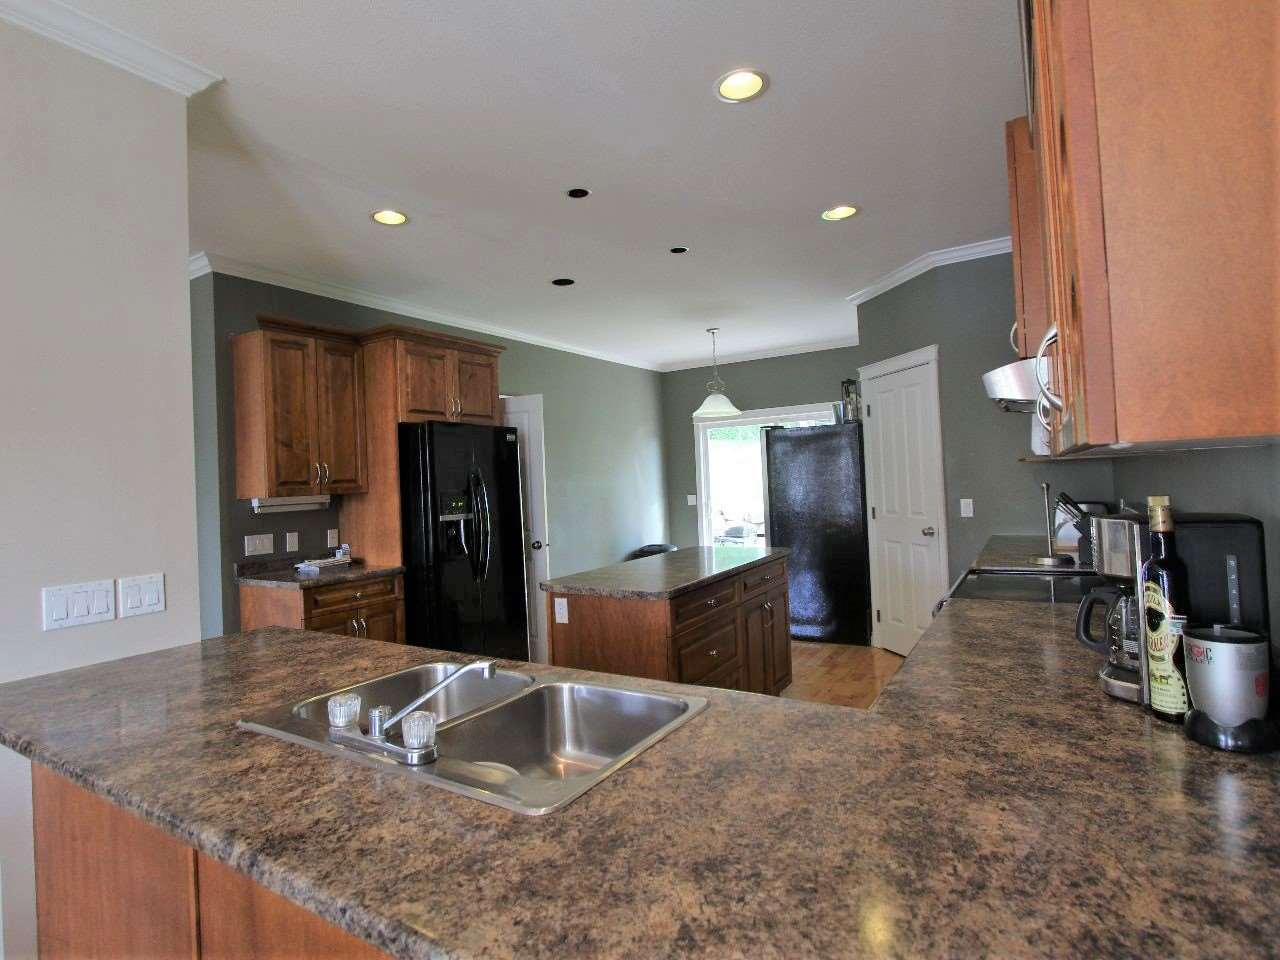 Photo 9: 30456 HERITAGE Drive in Abbotsford: Abbotsford West House for sale : MLS® # R2066678